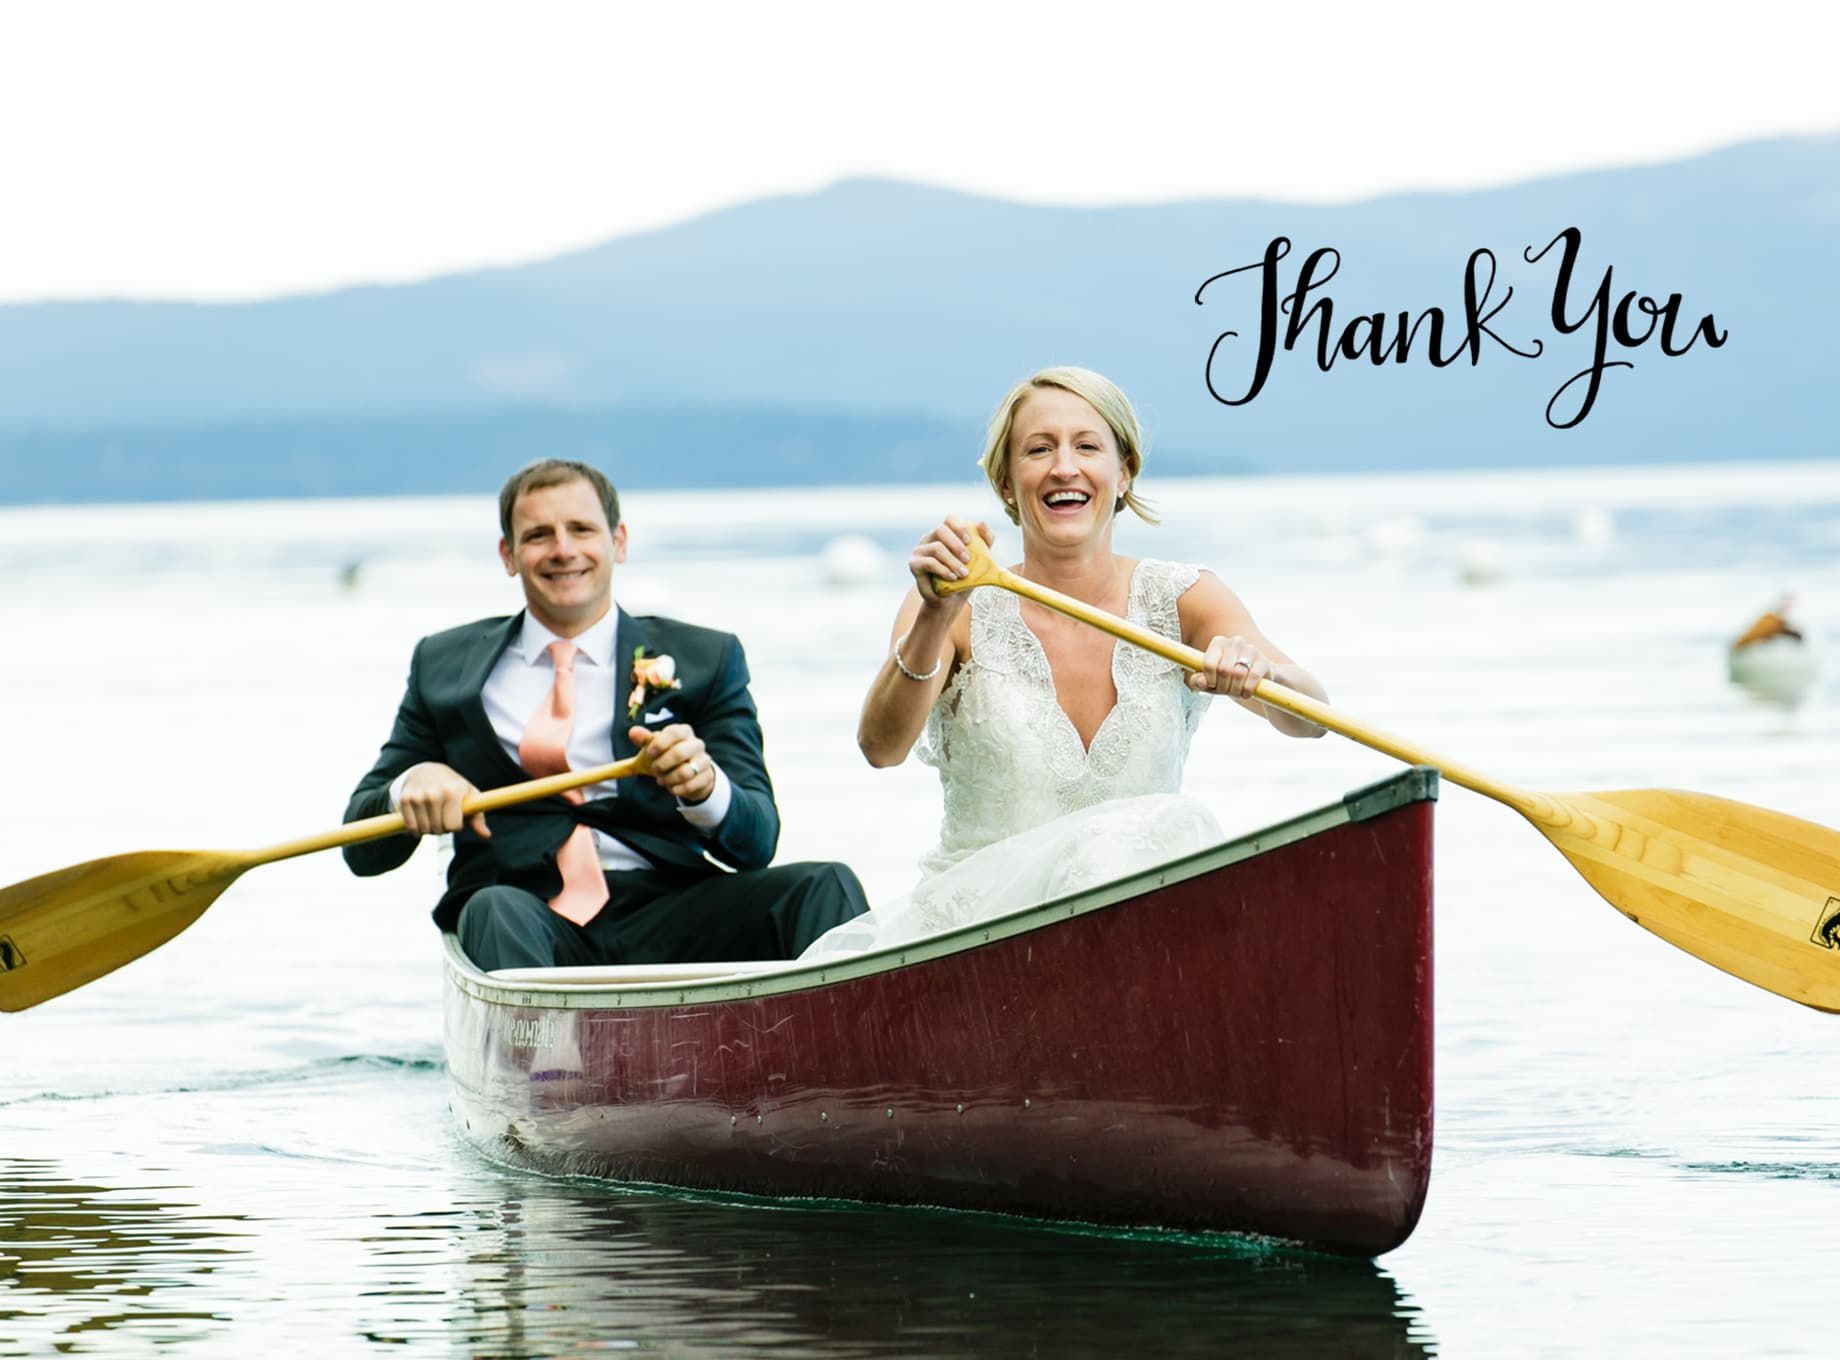 Thank you cards idea for a wedding photo